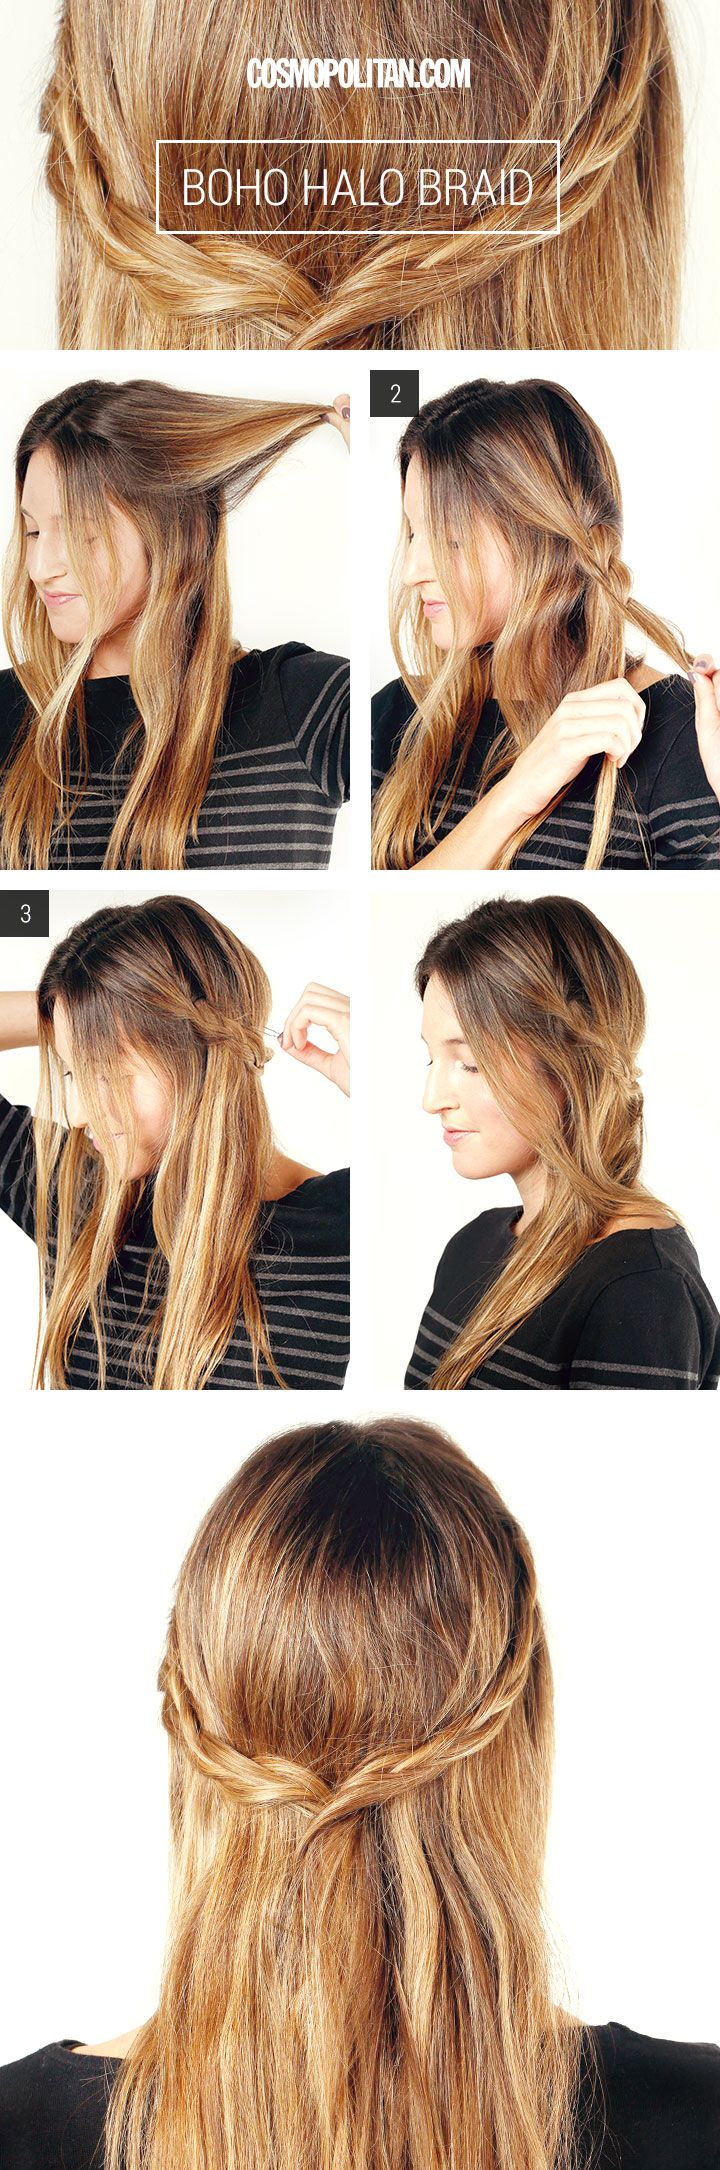 how to do a twist braid tutorial